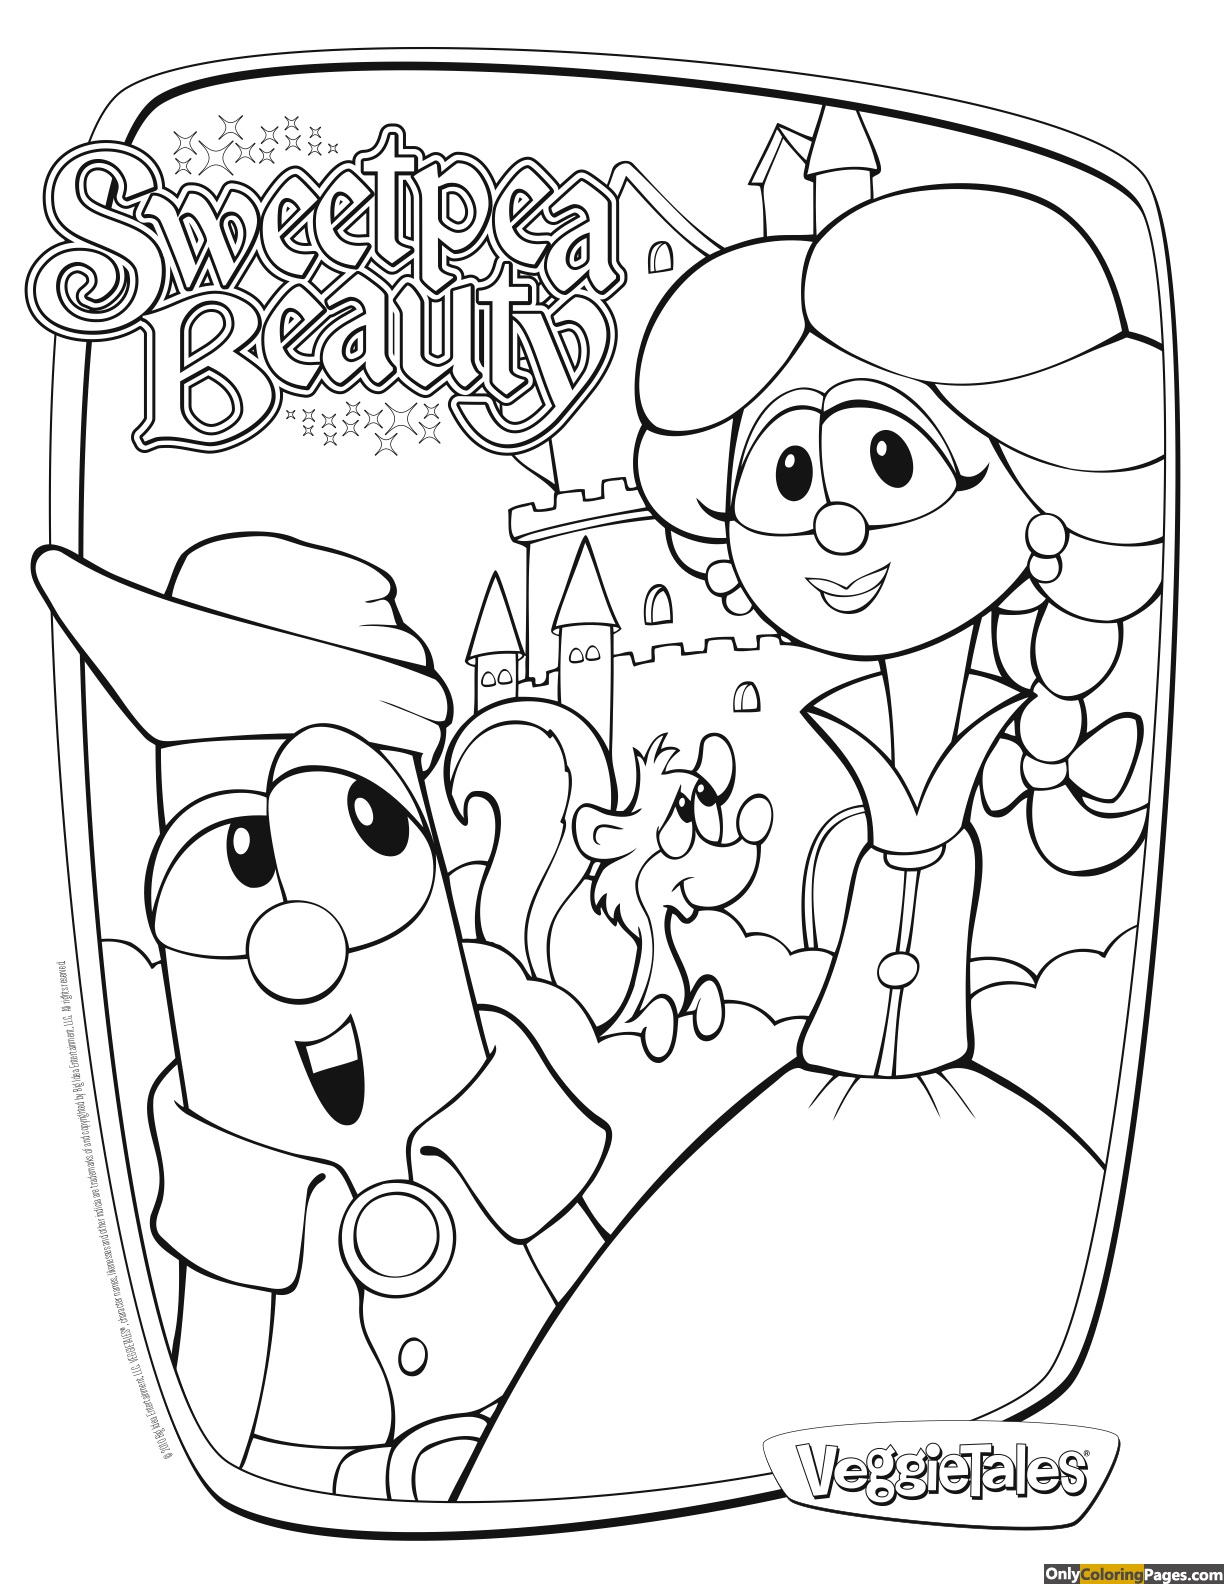 veggie tales coloring pages Free